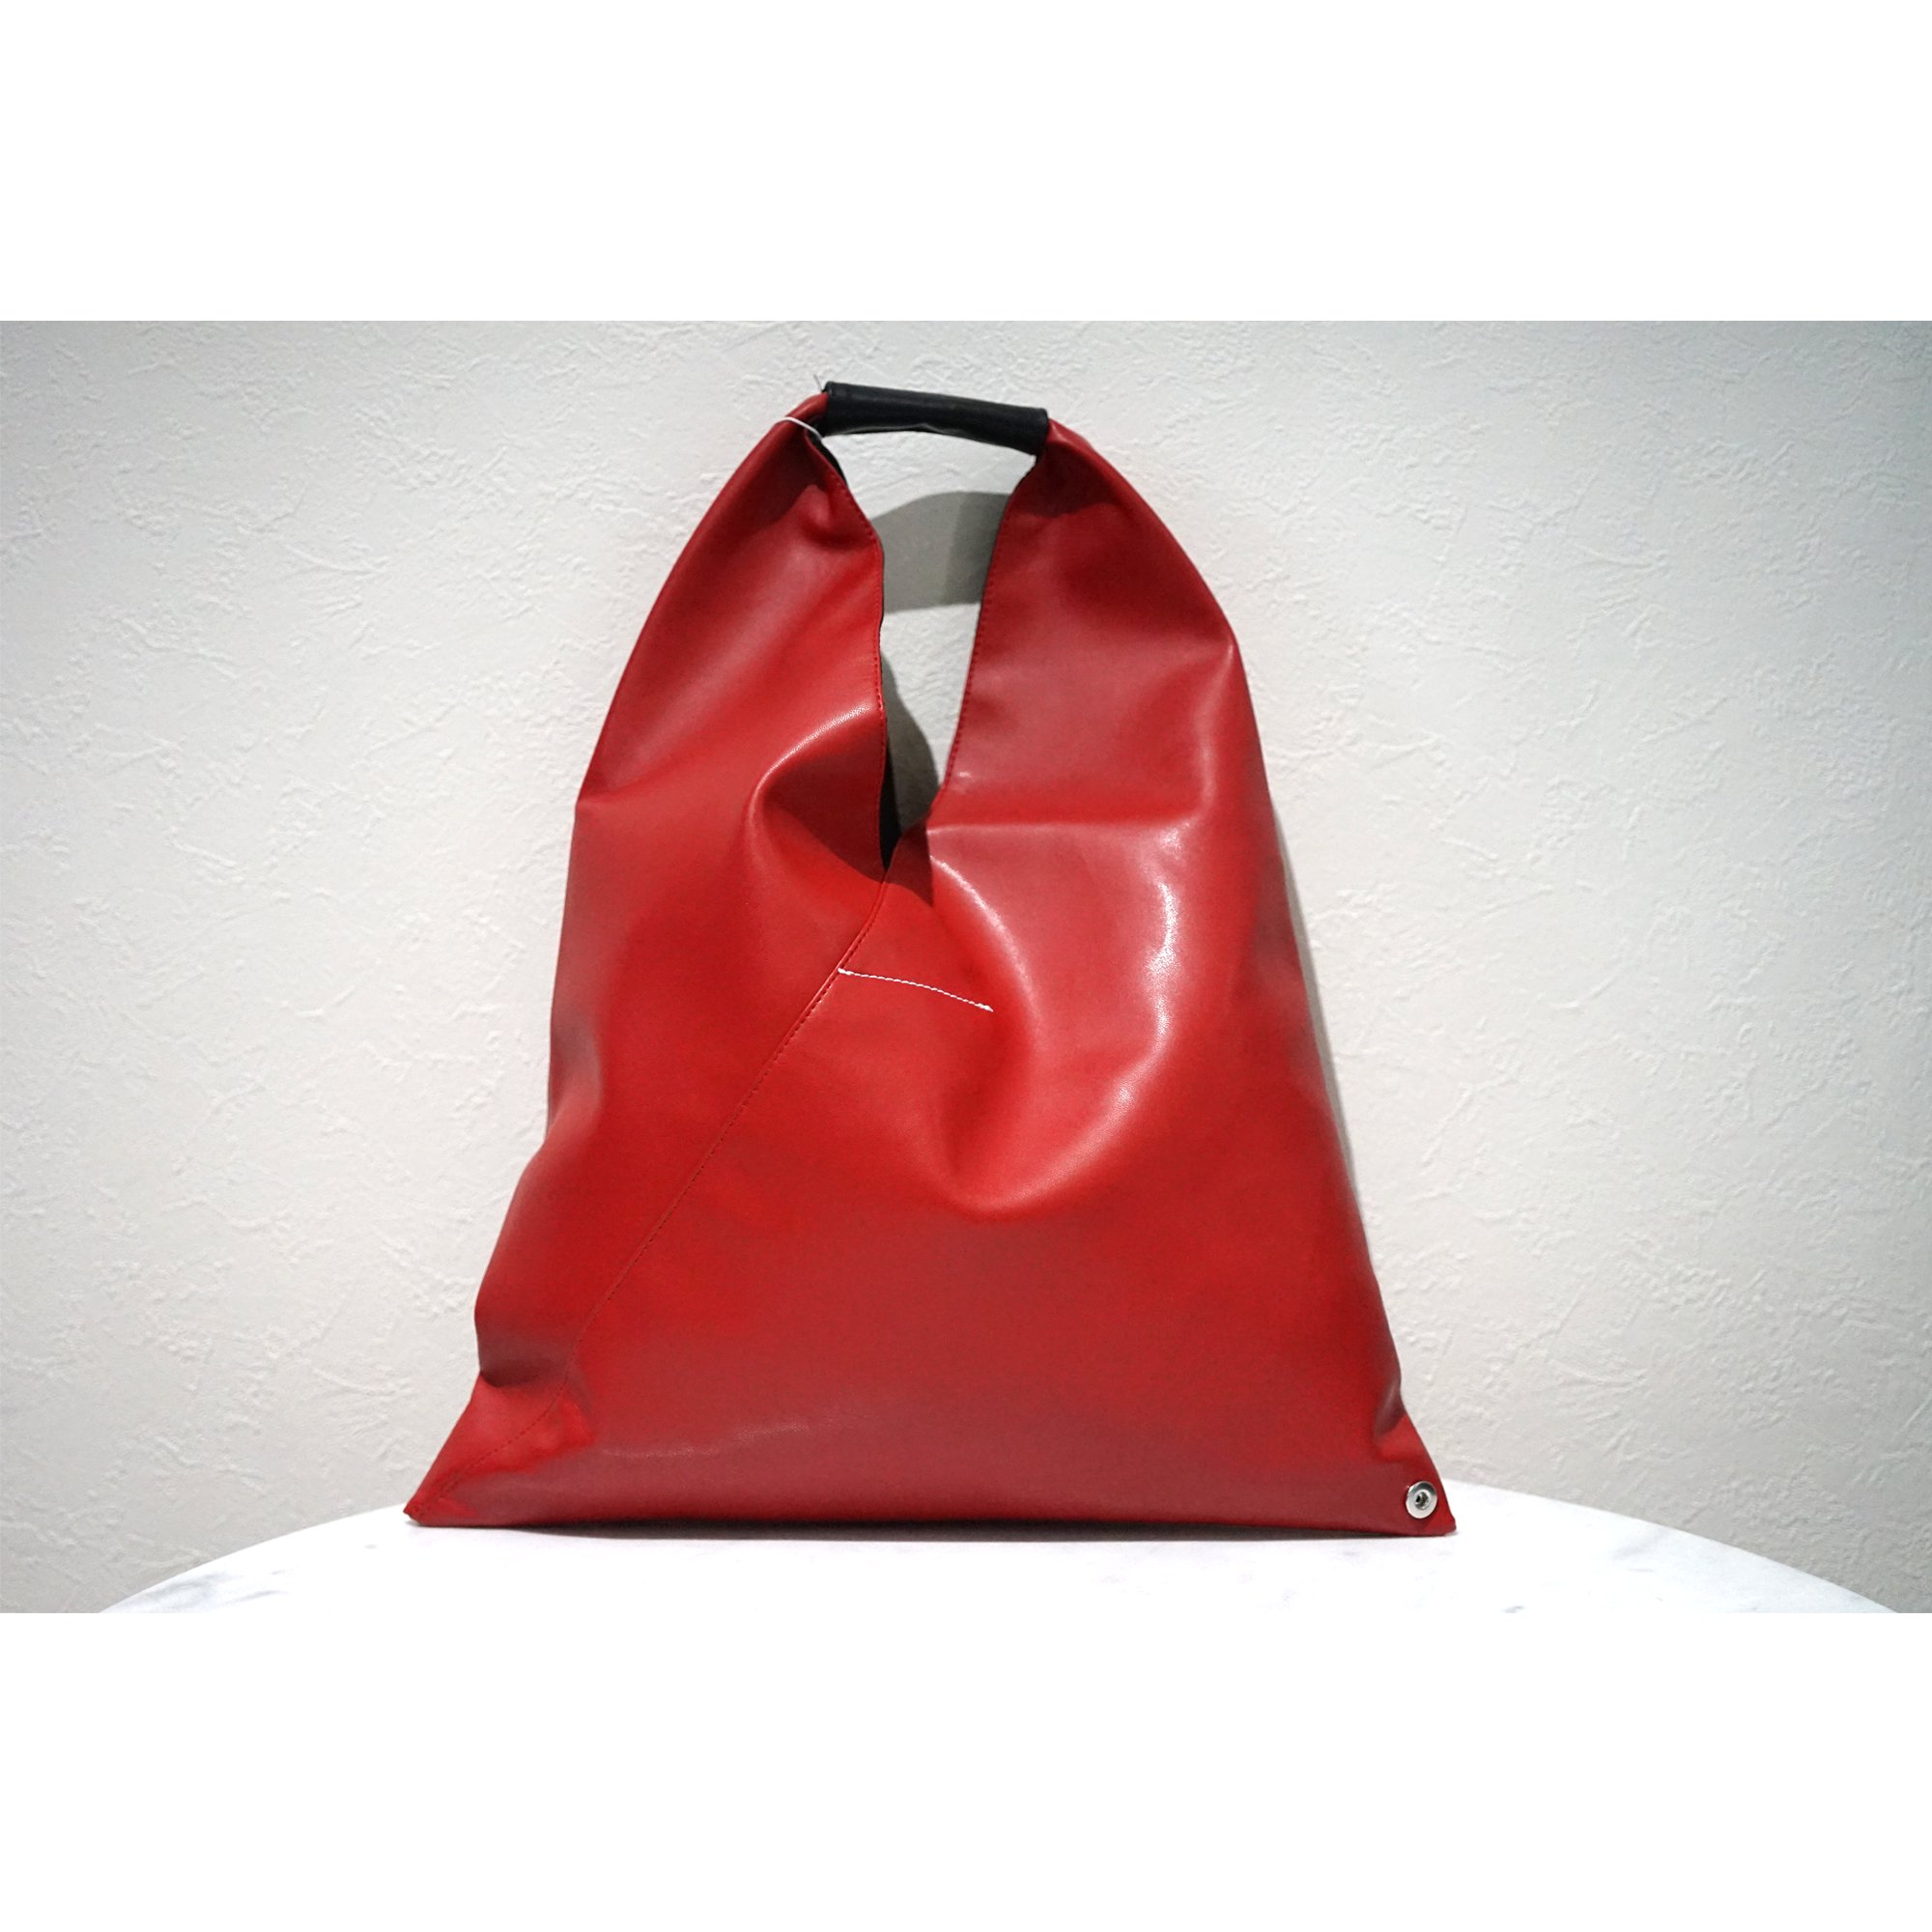 MM6-JAPANESE BAG COW LEATHER SMALL SIZE RED (在庫なし)